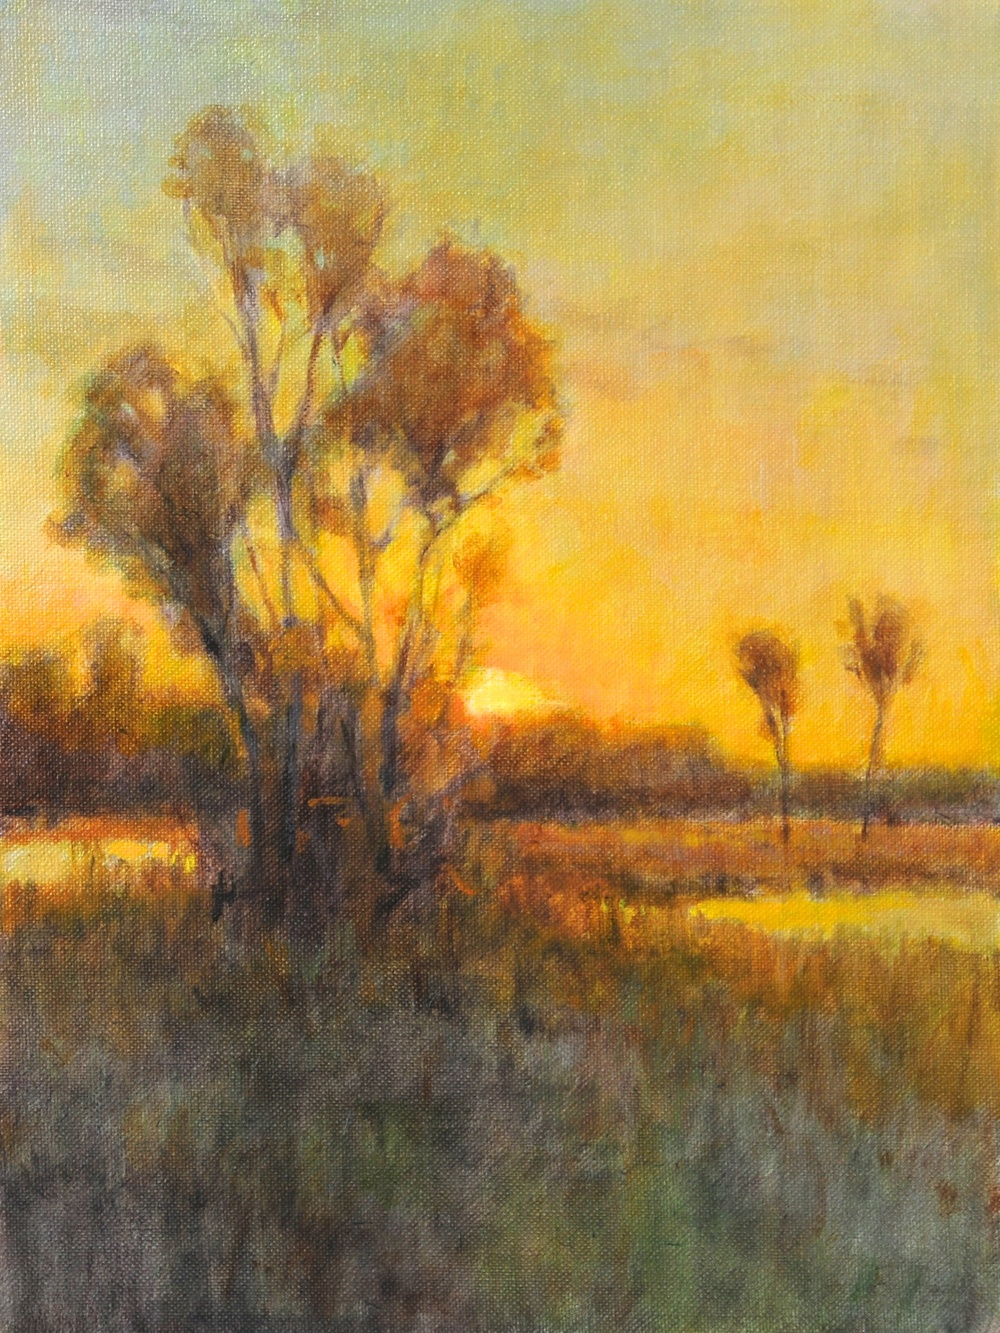 Sunset at Sandy Creek. 9 x 12. Oil on linen panel.